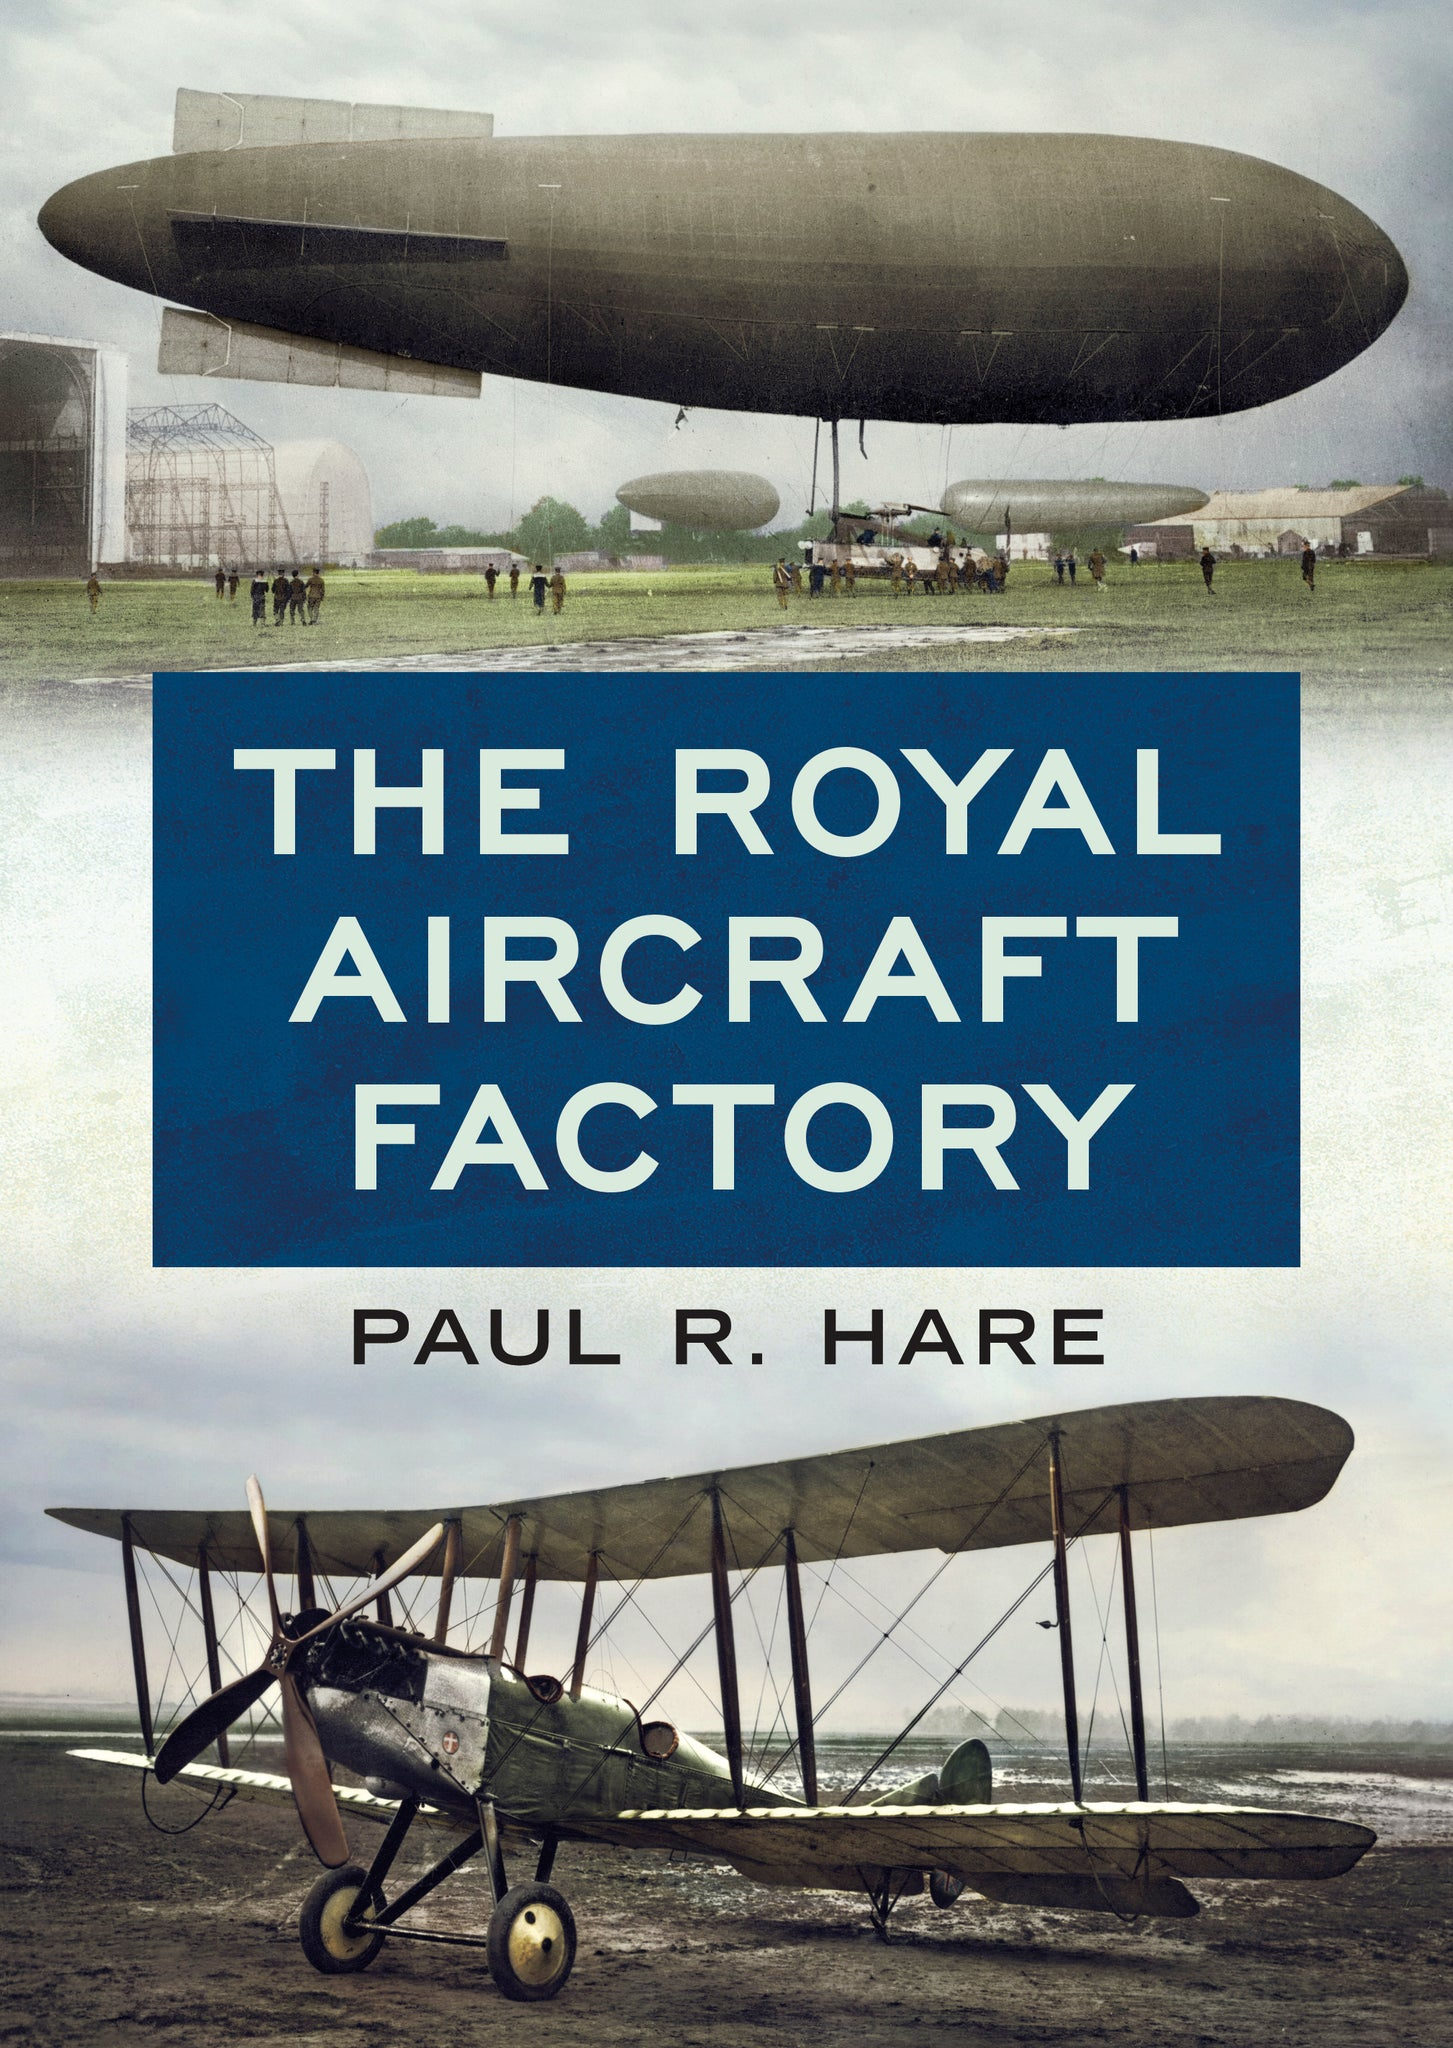 The Royal Aircraft Factory